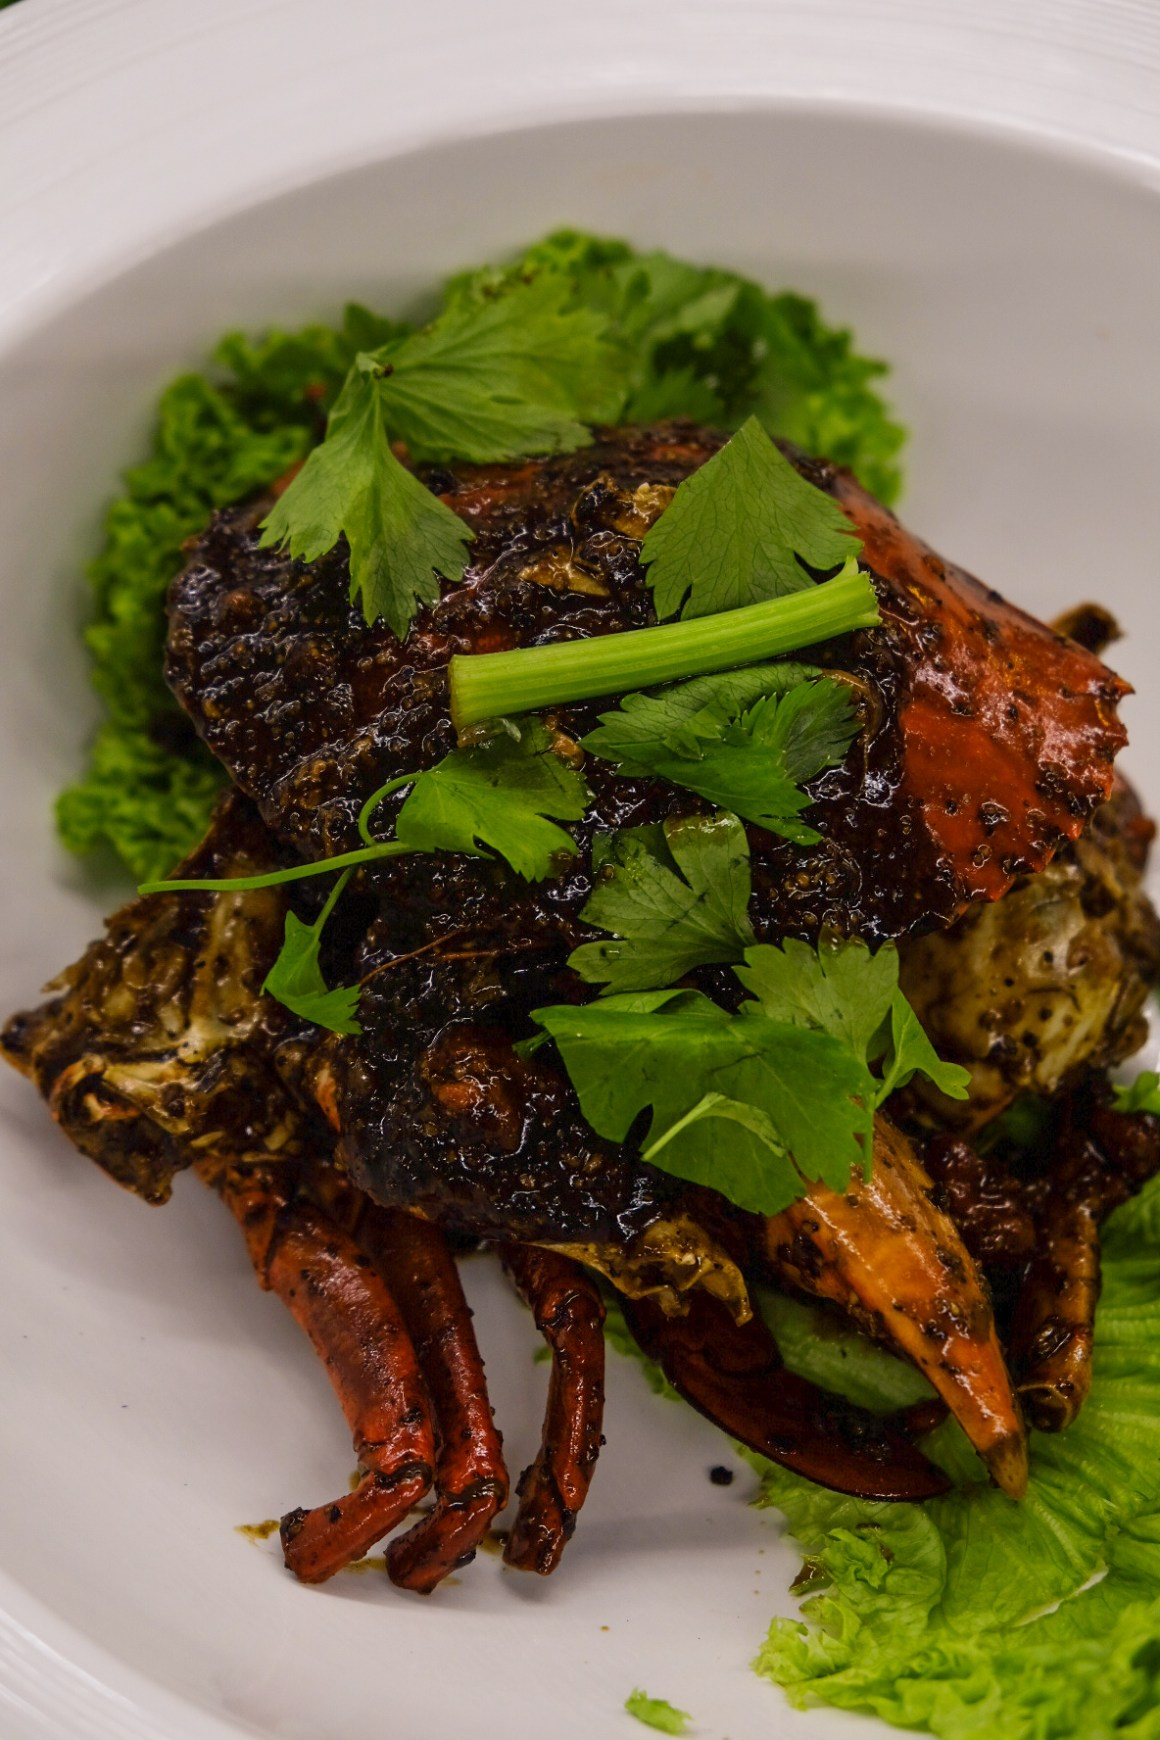 Lai Bao, an Affordable 1960s-inspired Zichar - Lai Bao 13 Spices Black Pepper Crab ($30/$50 1 crab / 2 crabs)